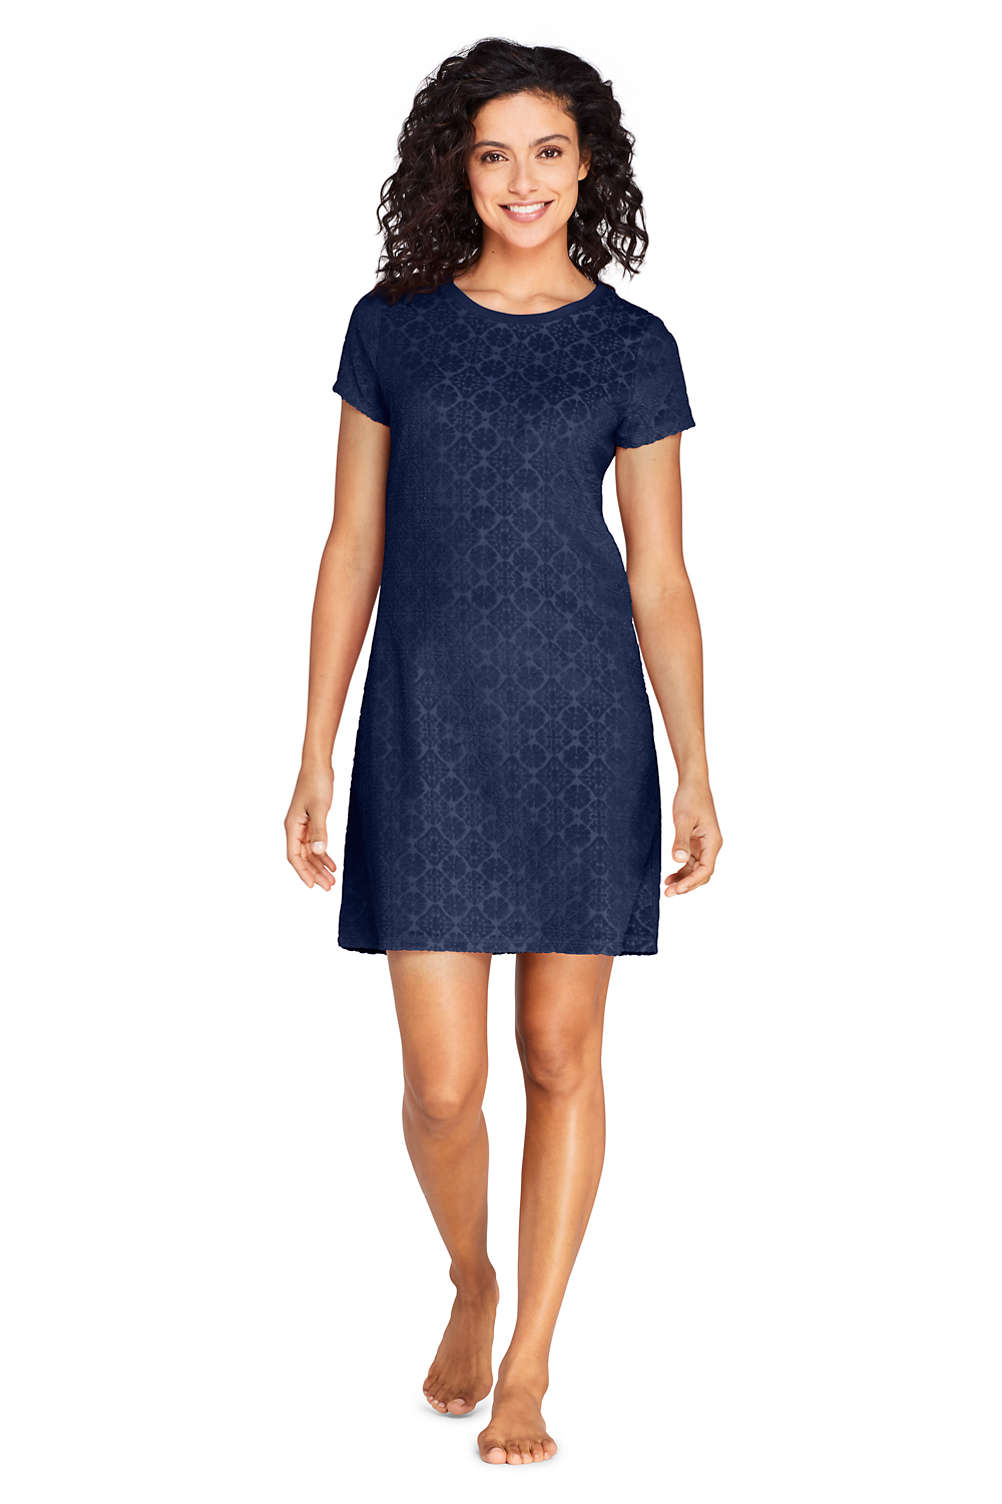 0bfc9c26c6 Women's Jacquard Terry T-Shirt Dress Swim Cover-up from Lands' End